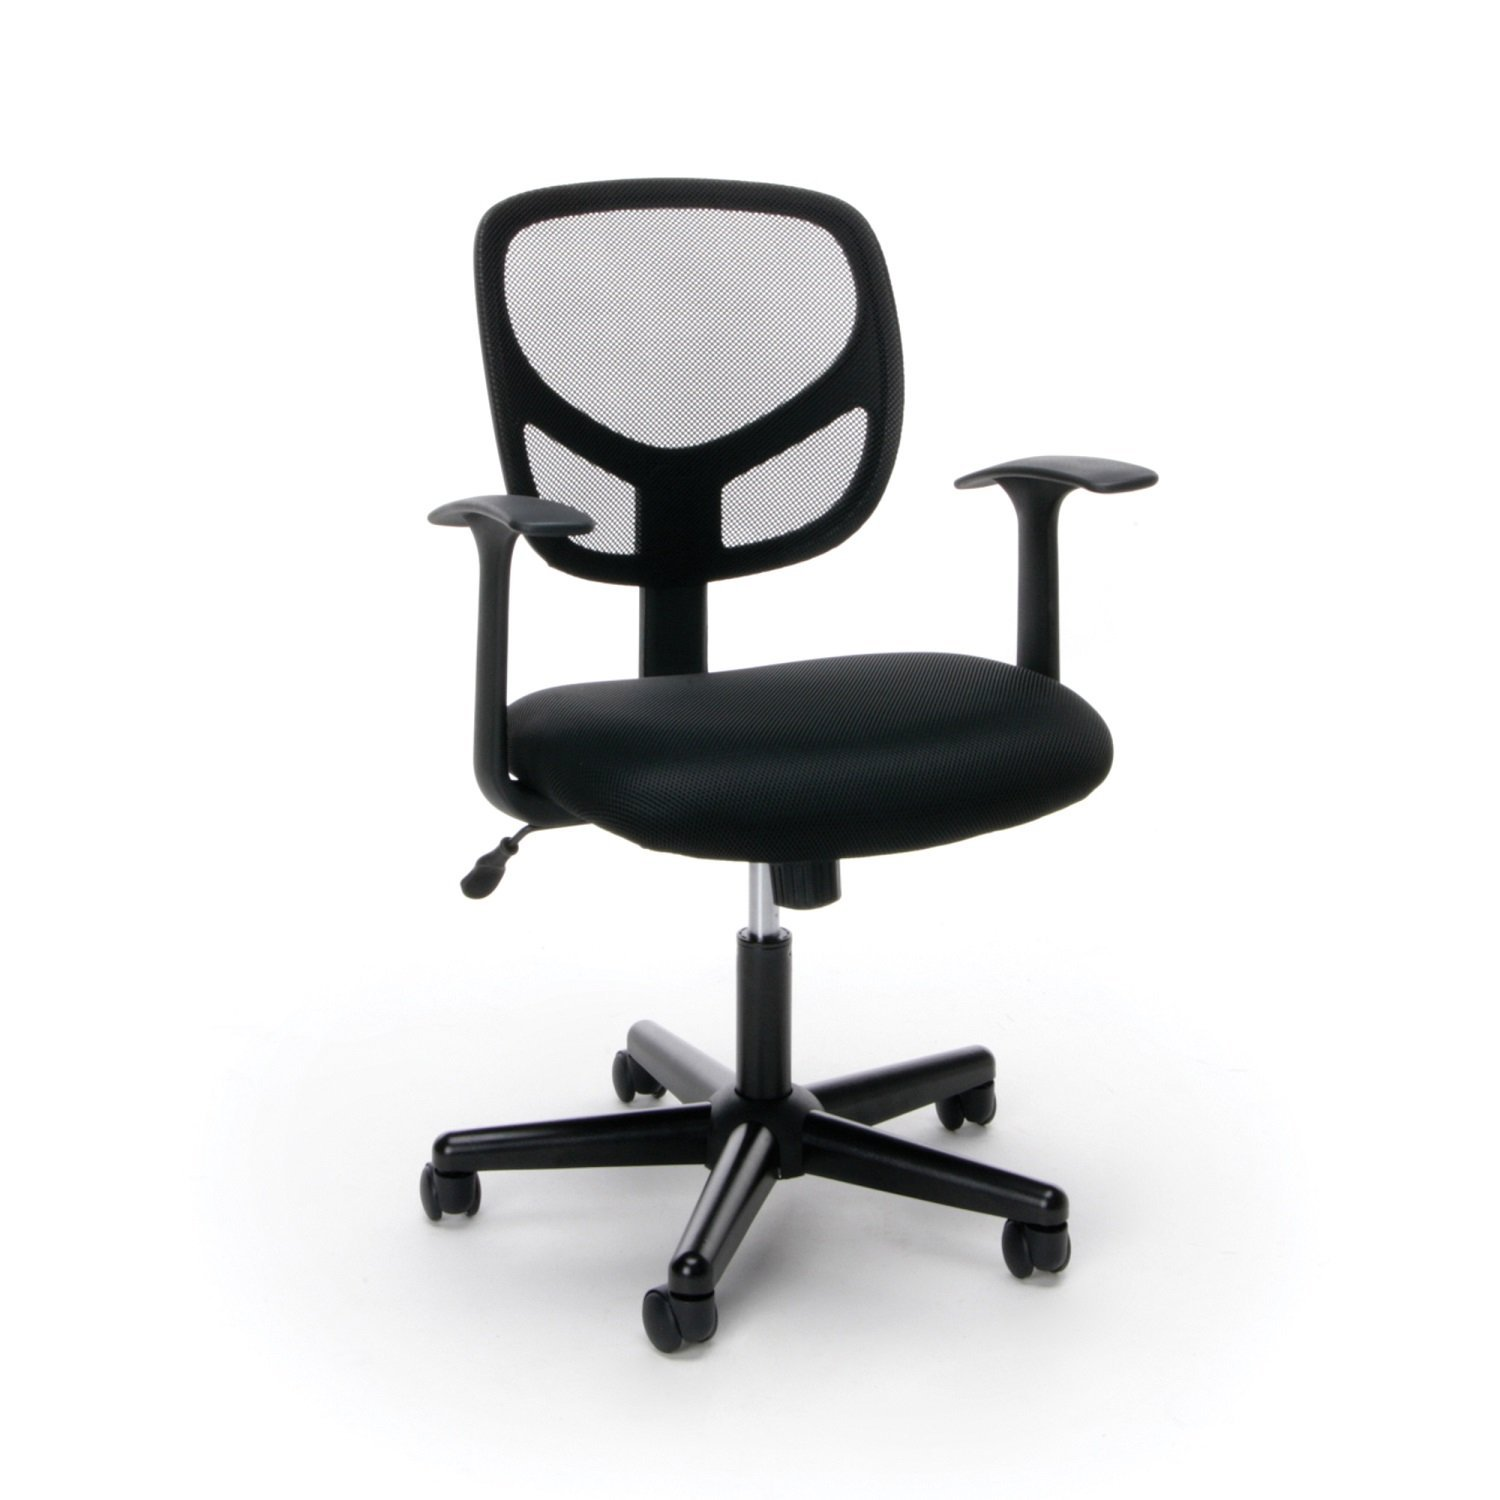 office chair deals round kitchen table and chairs for 4 today only save on gaming from amazon